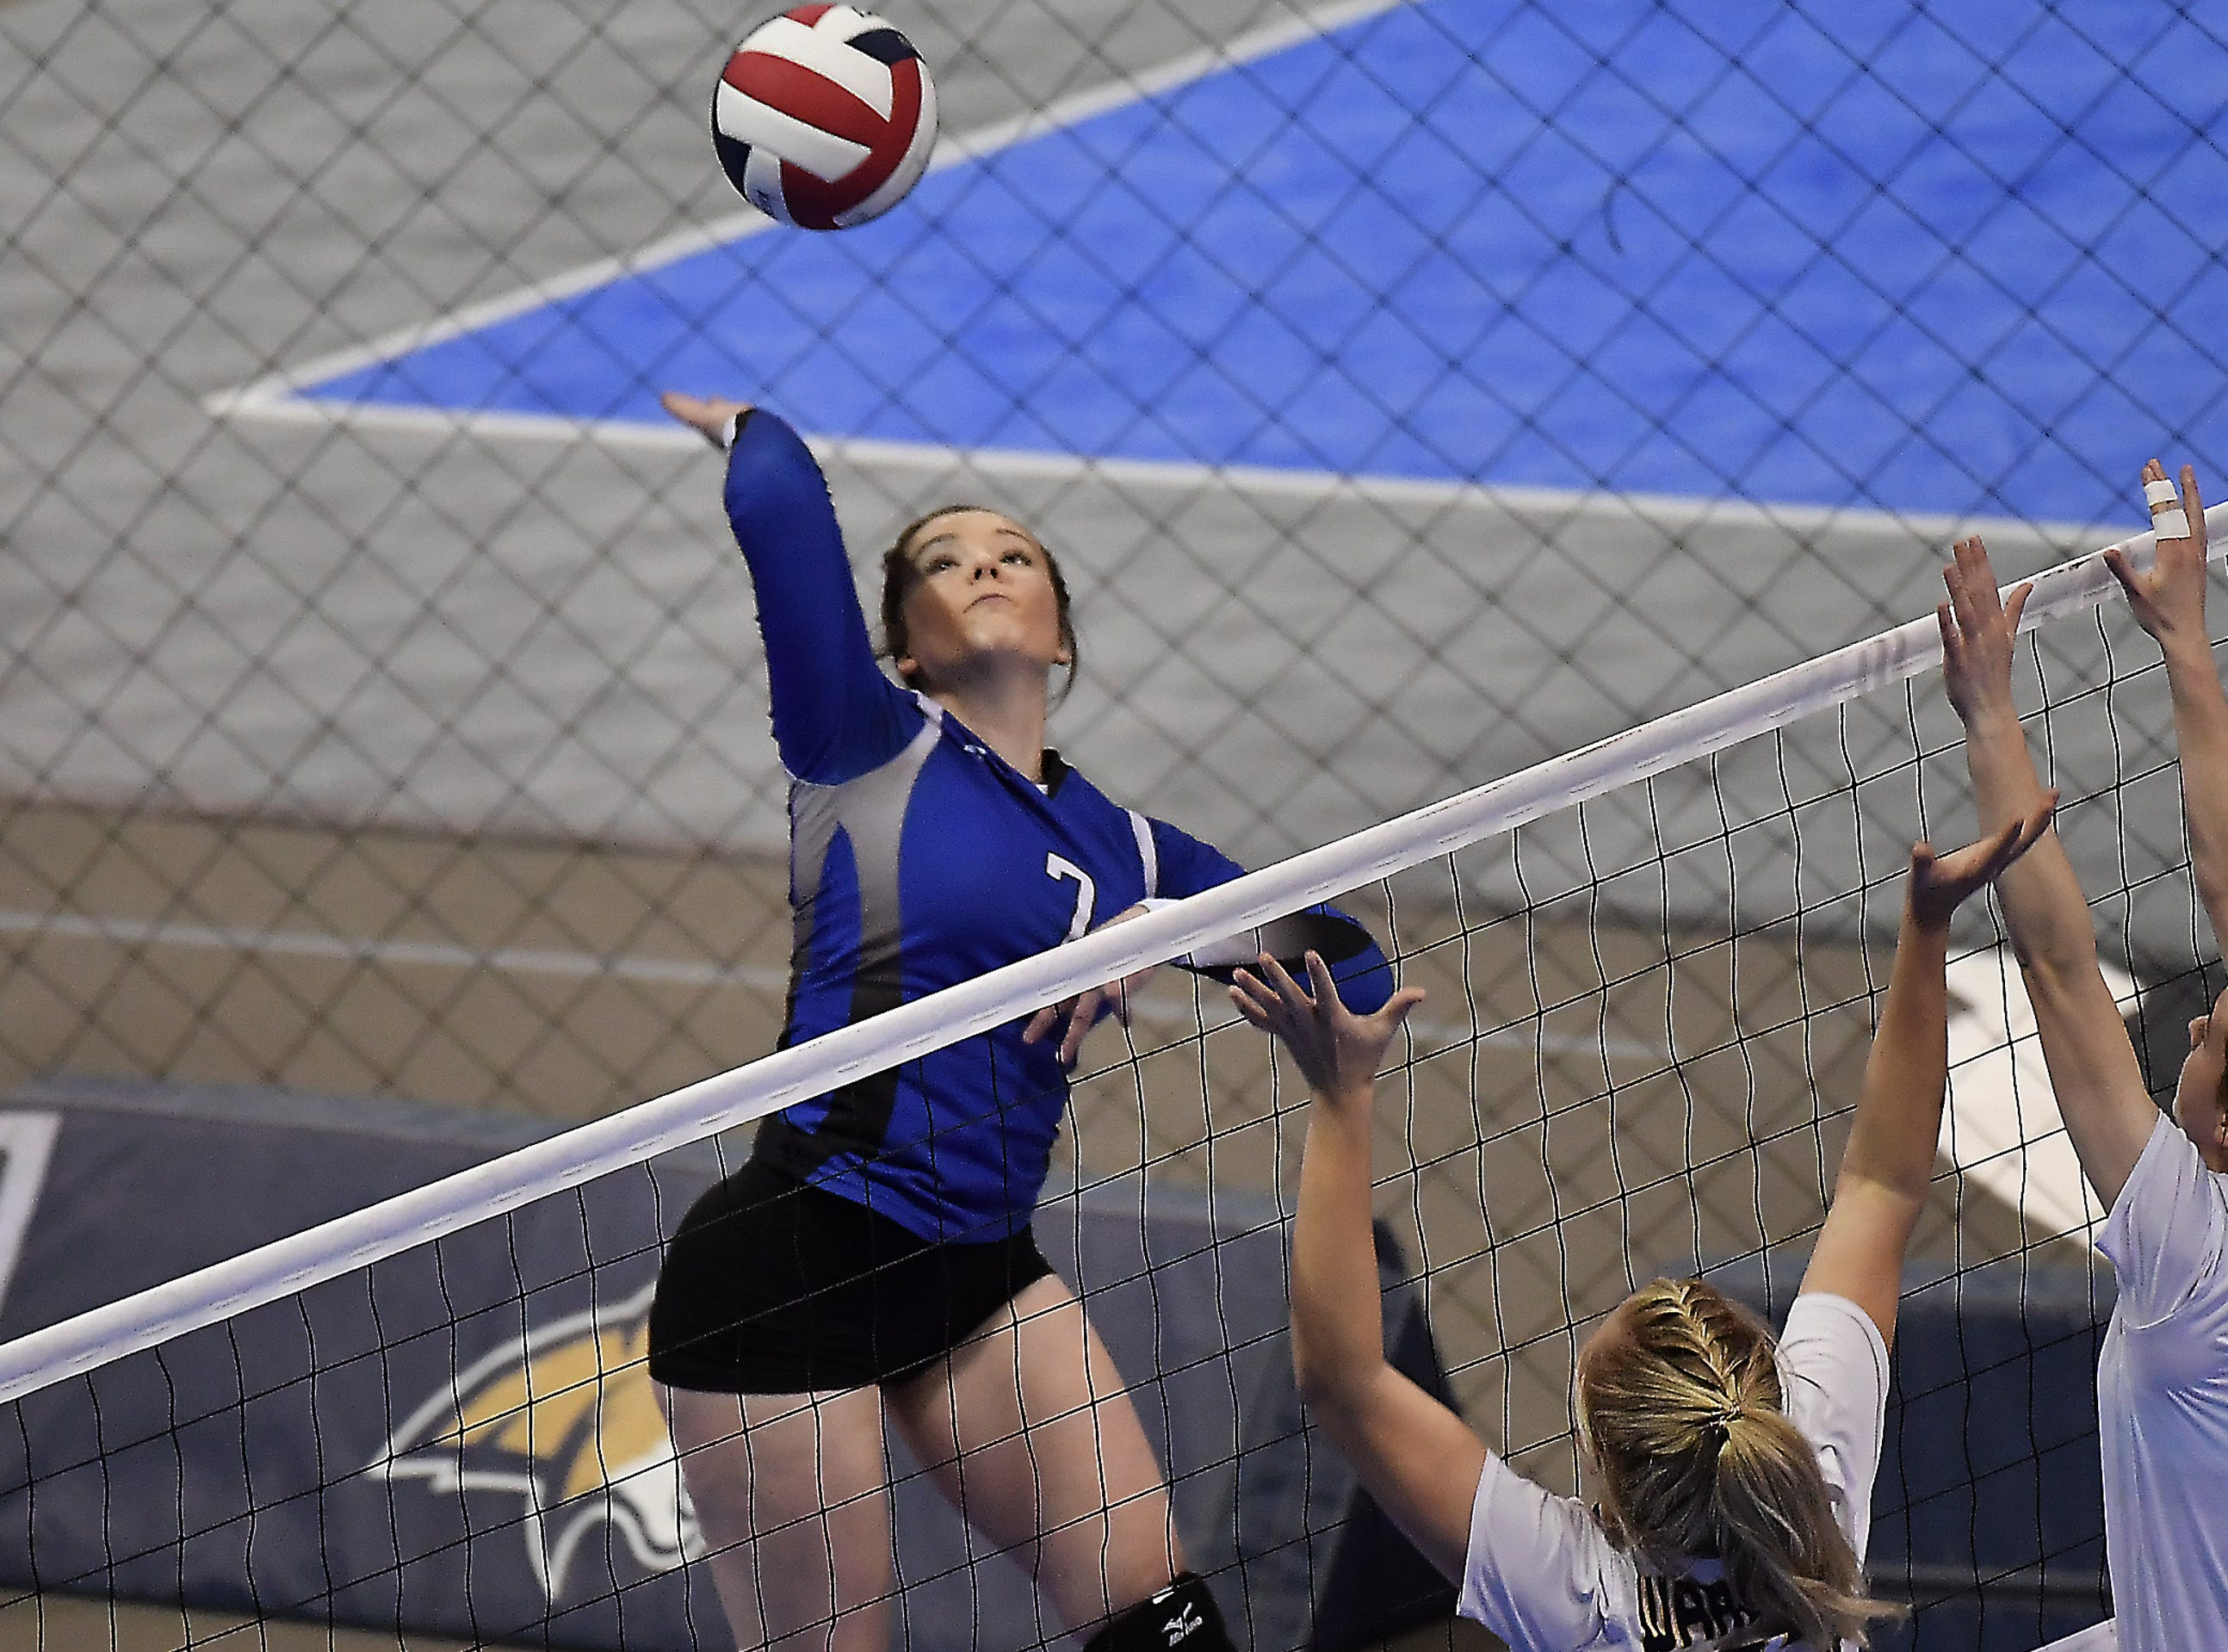 Fairfield's Cheyenne Maddox spikes the ball against Deer Lodge at the All-Class State Volleyball Tournament at the Brick Breeden Fieldhouse in Bozeman.